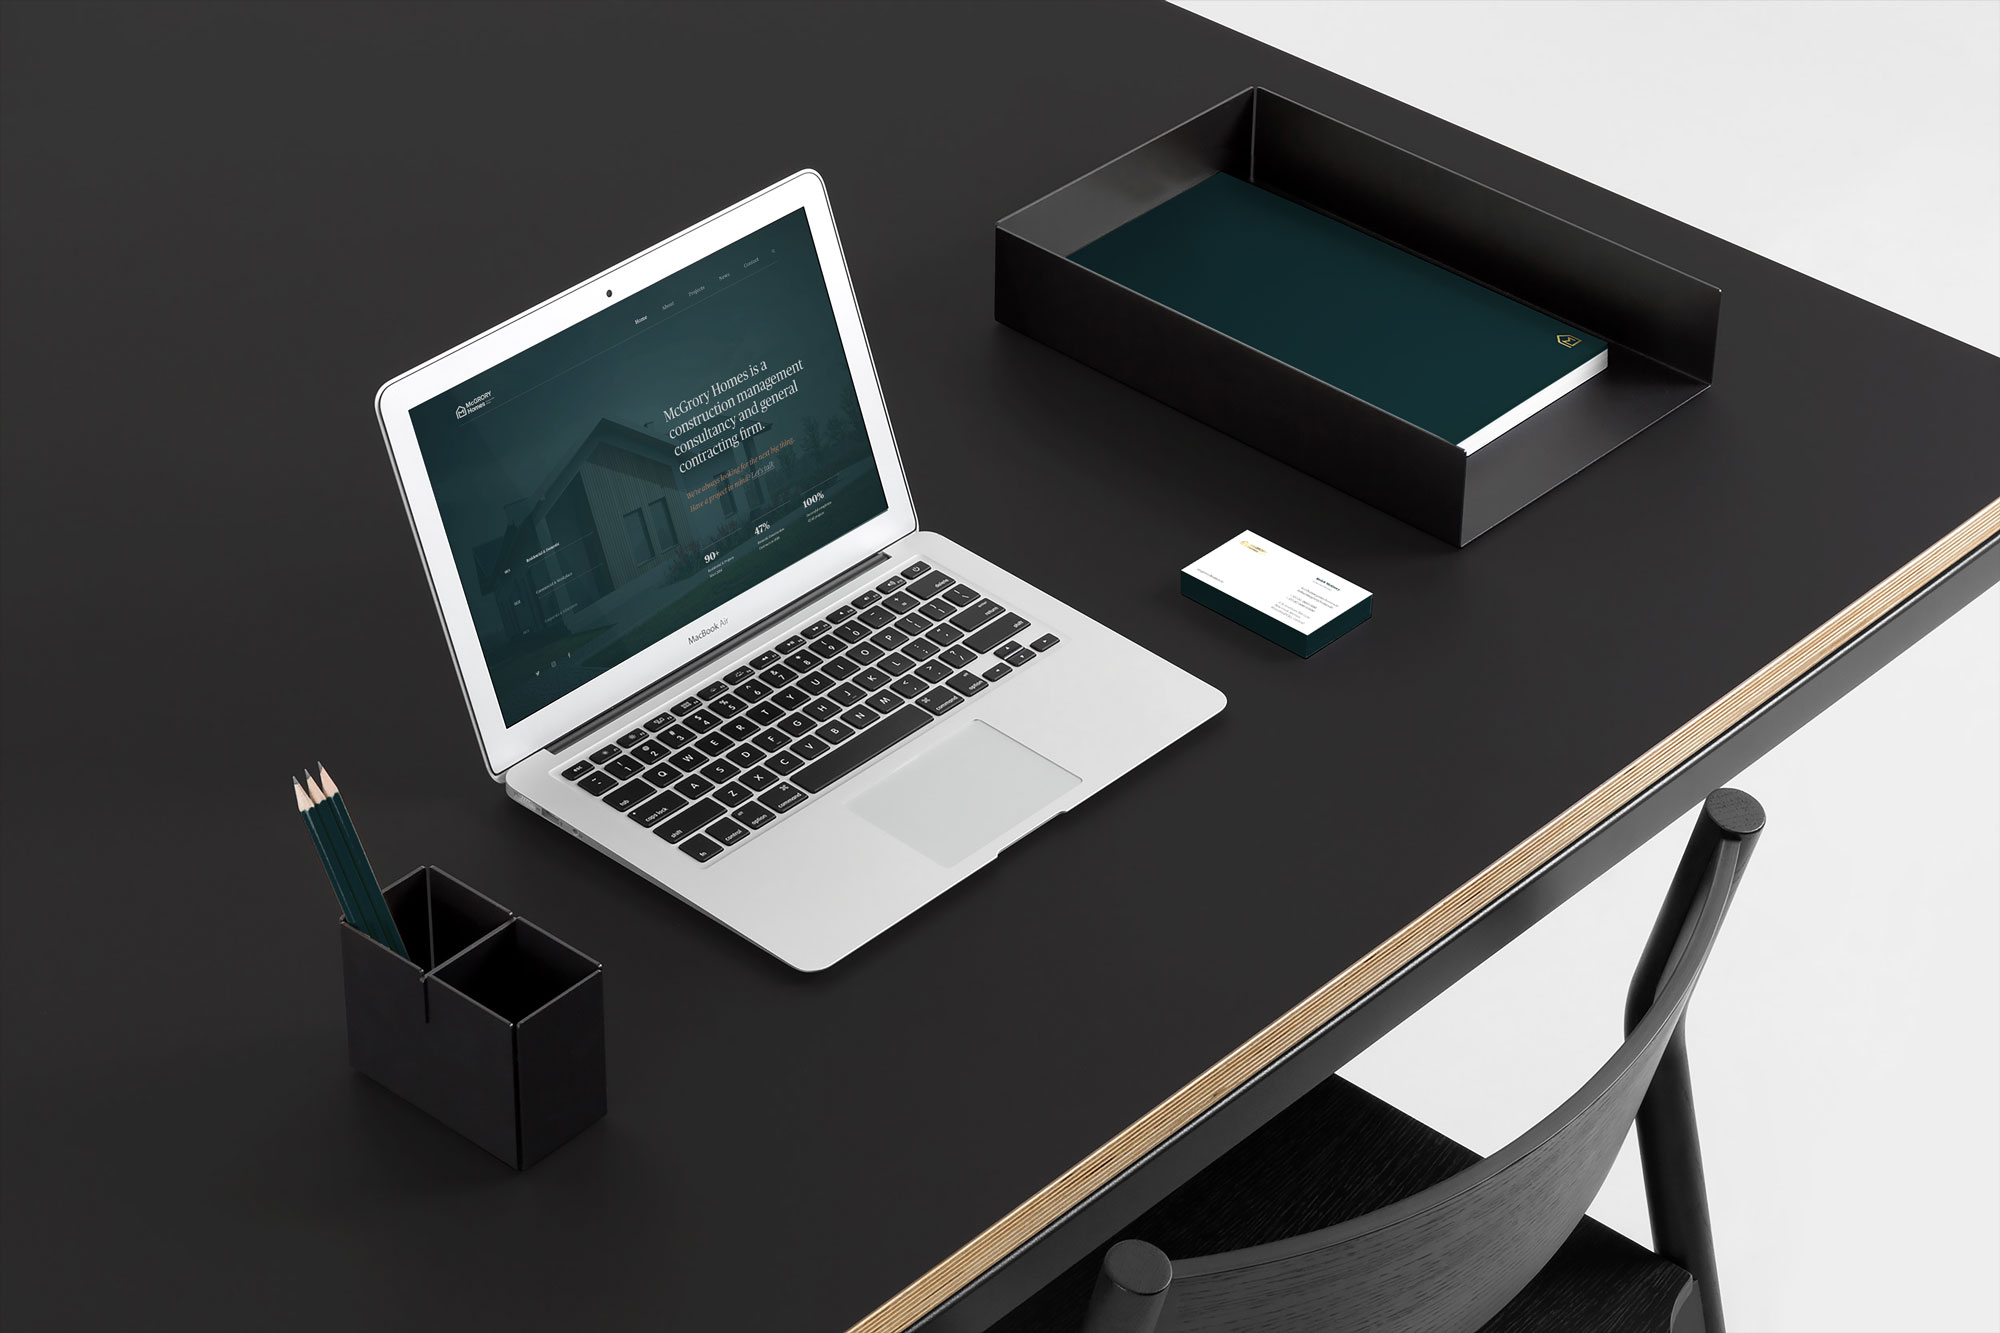 workpalce-desk-image